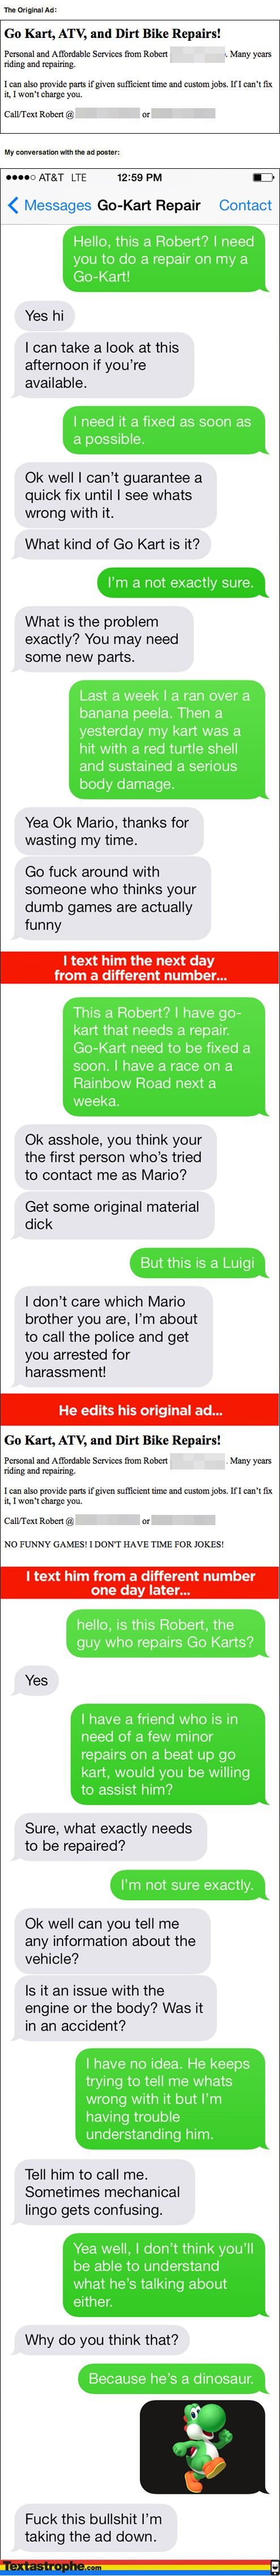 How These Guys Troll People On Craigslist Is Epic